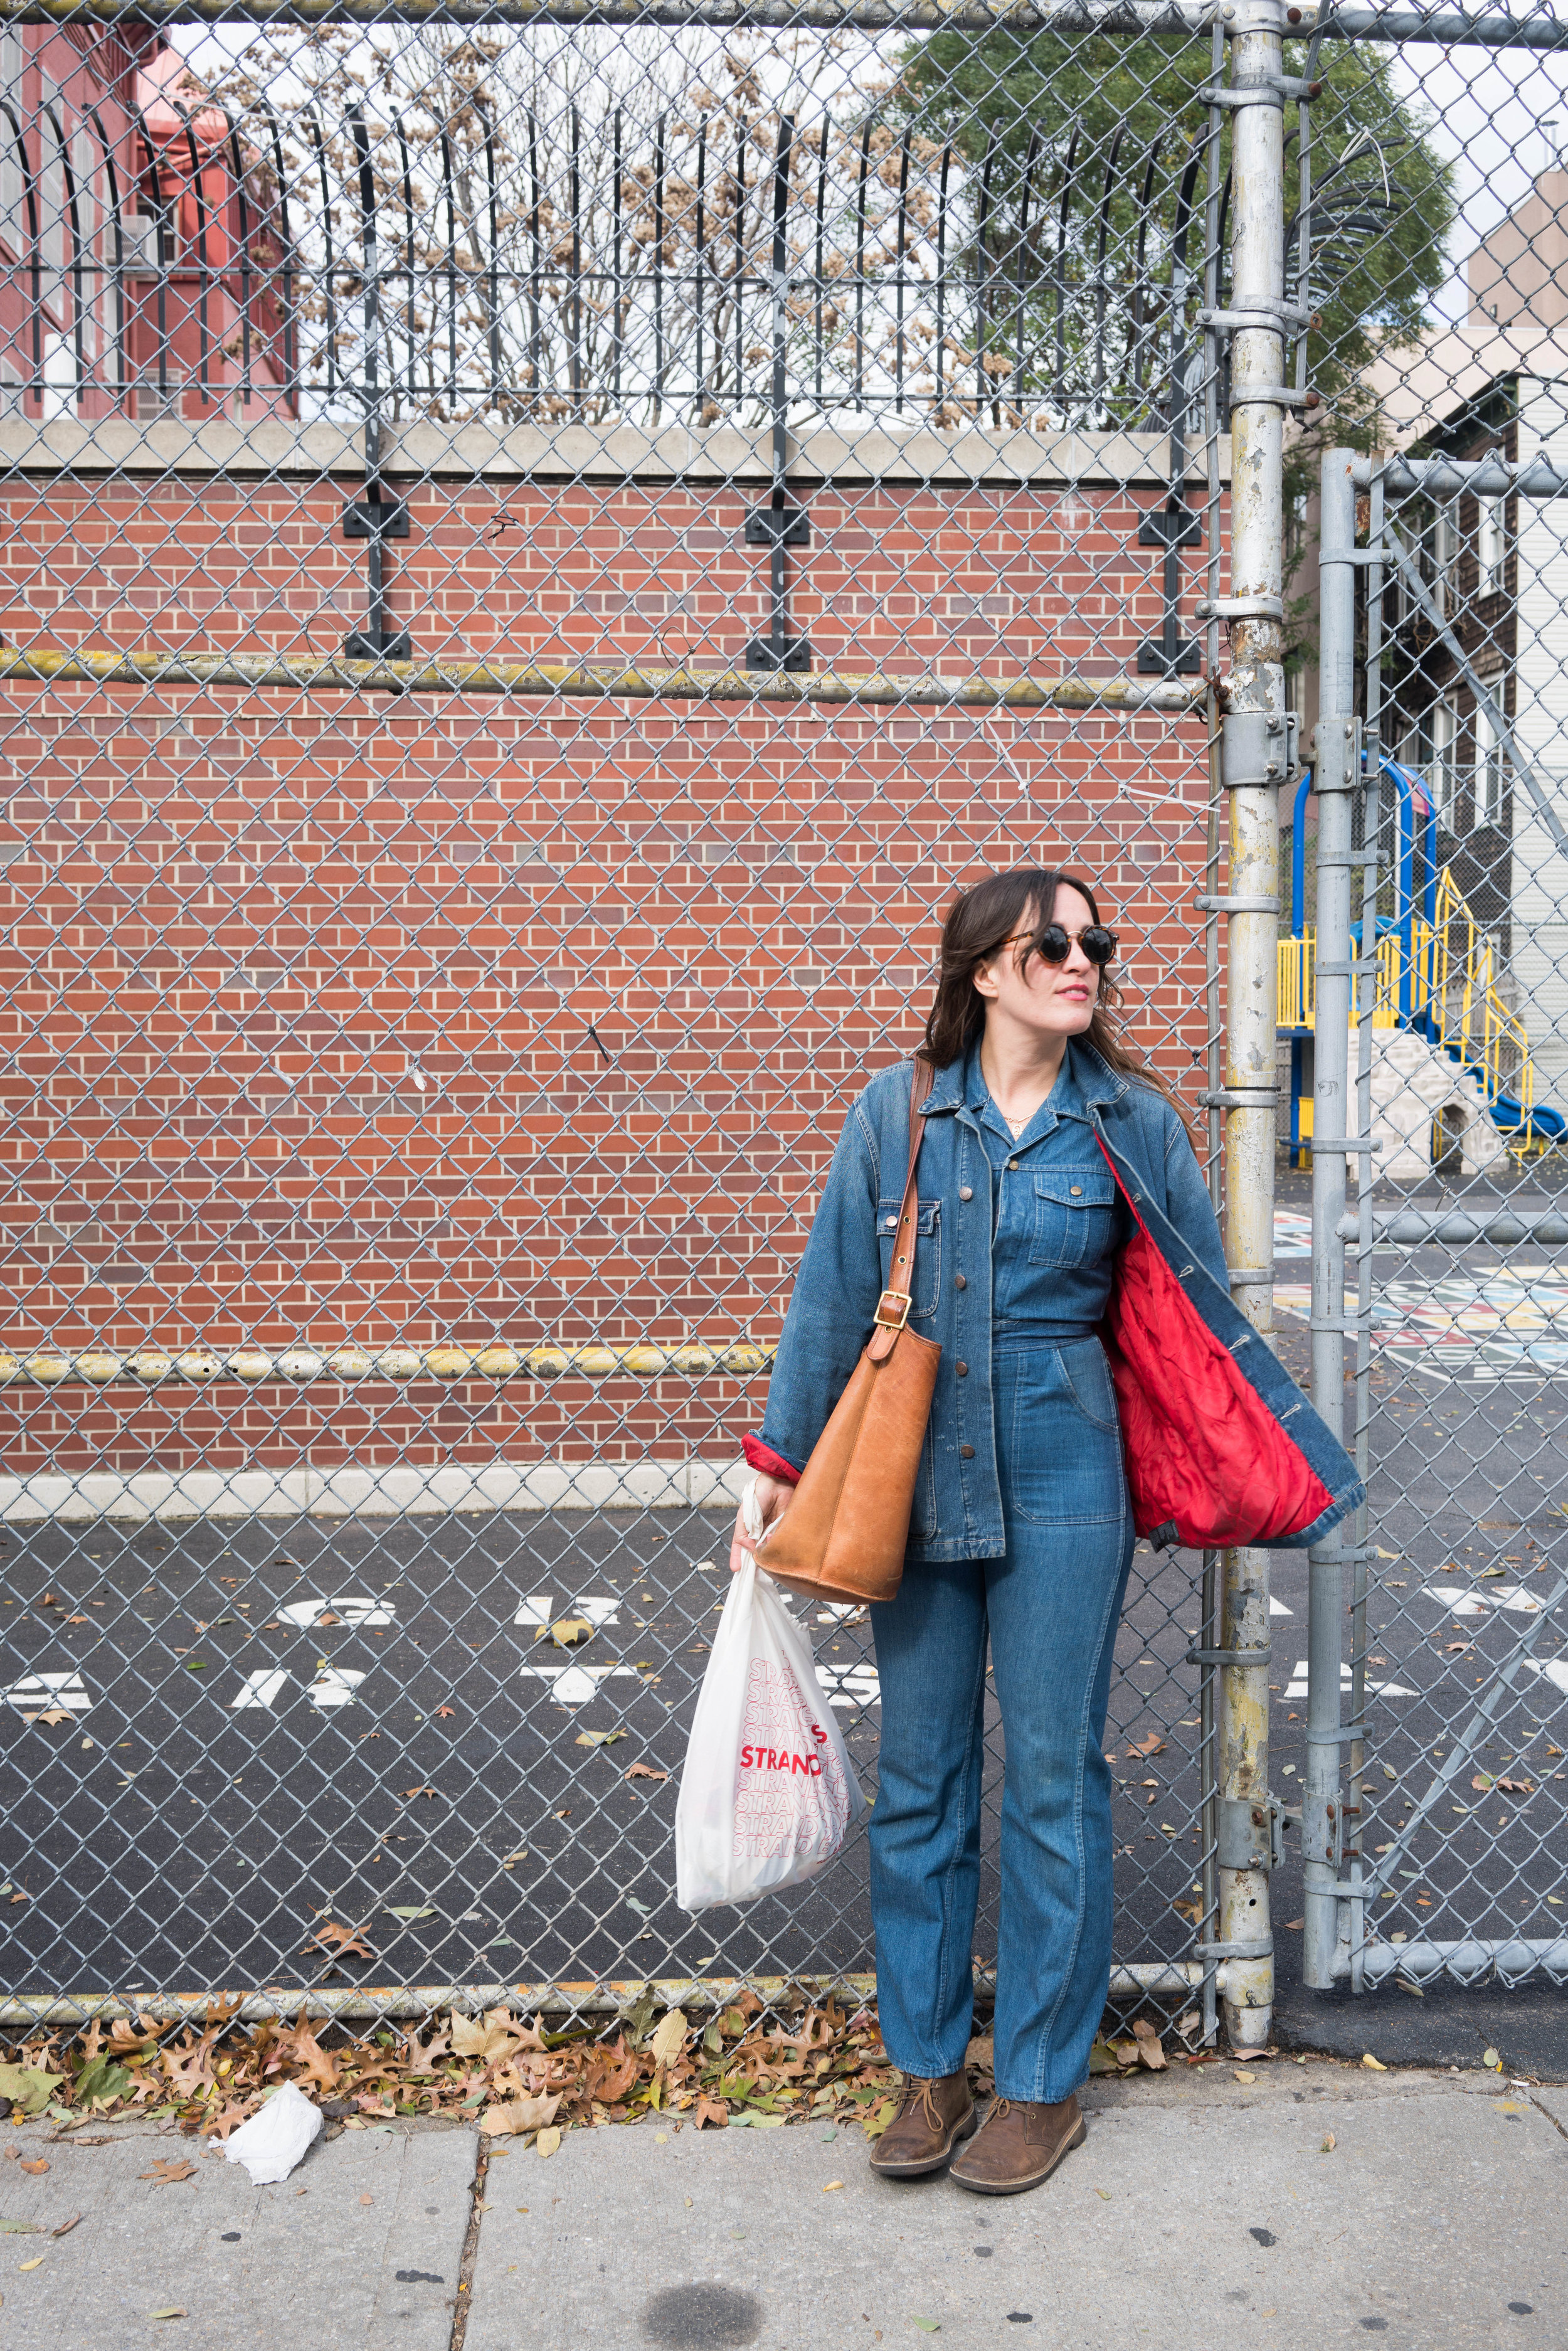 Jumpsuit, Sunglasses, Thrifted; Bag, Vintage Coach;    Boots, Clark's    ;    Reusable Grocery Bag, The Strand